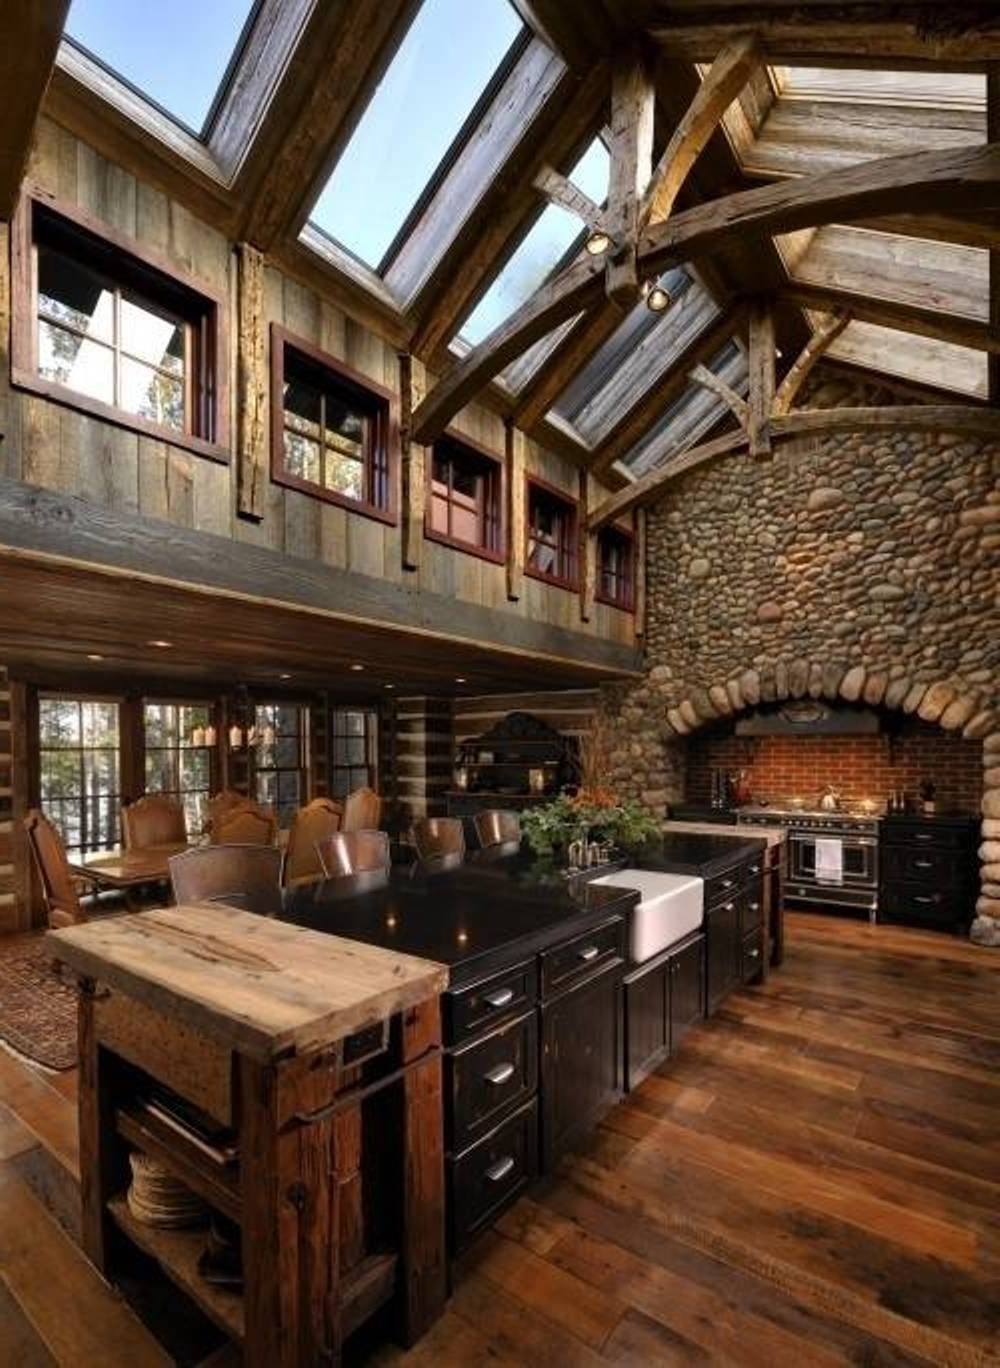 rustic kitchen design. Would look awesome in a Cabin/Lodge ...